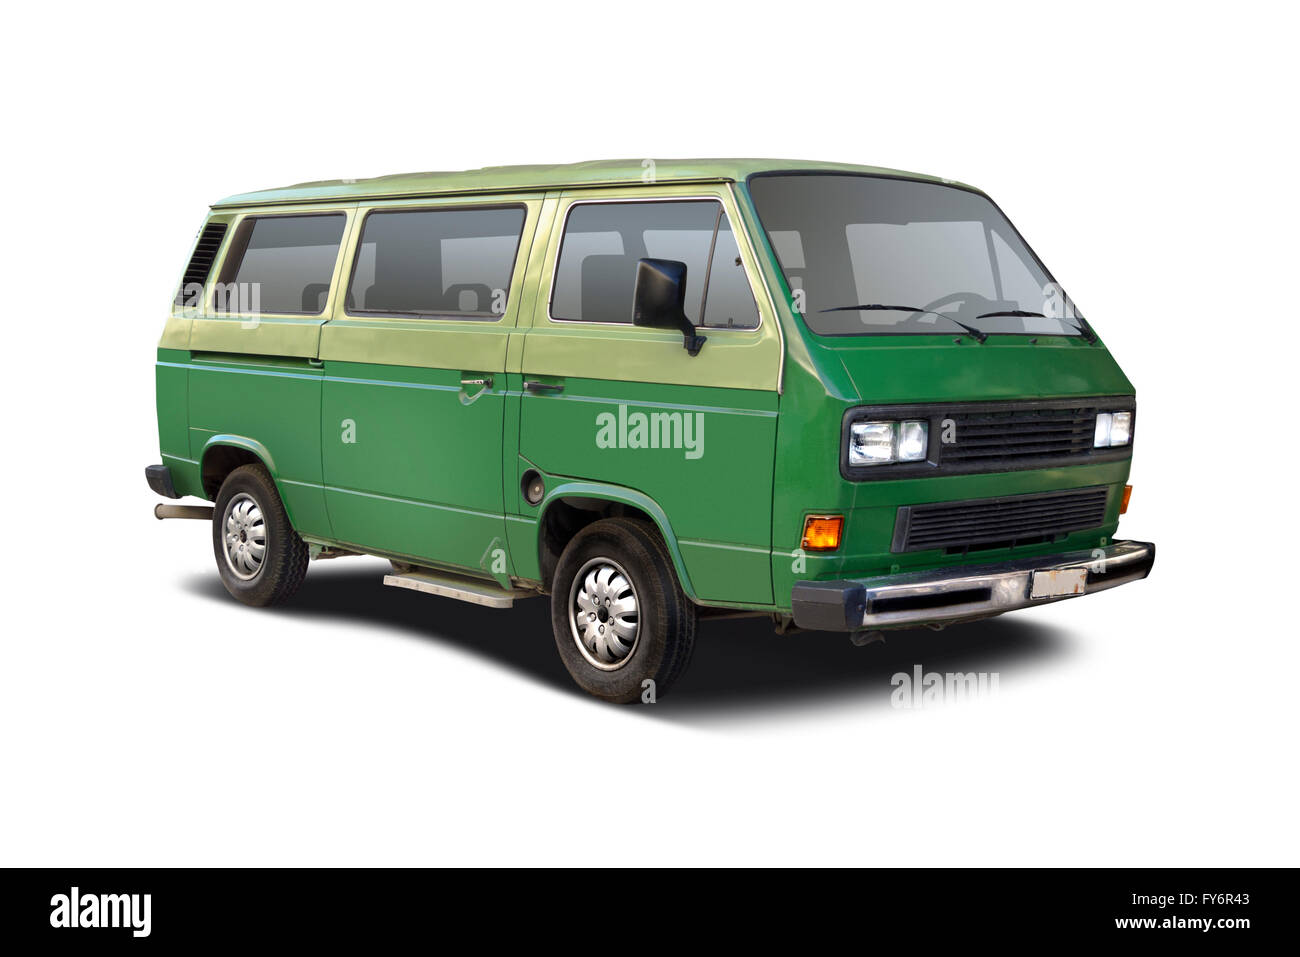 Green camper van side view isolated on white Stock Photo